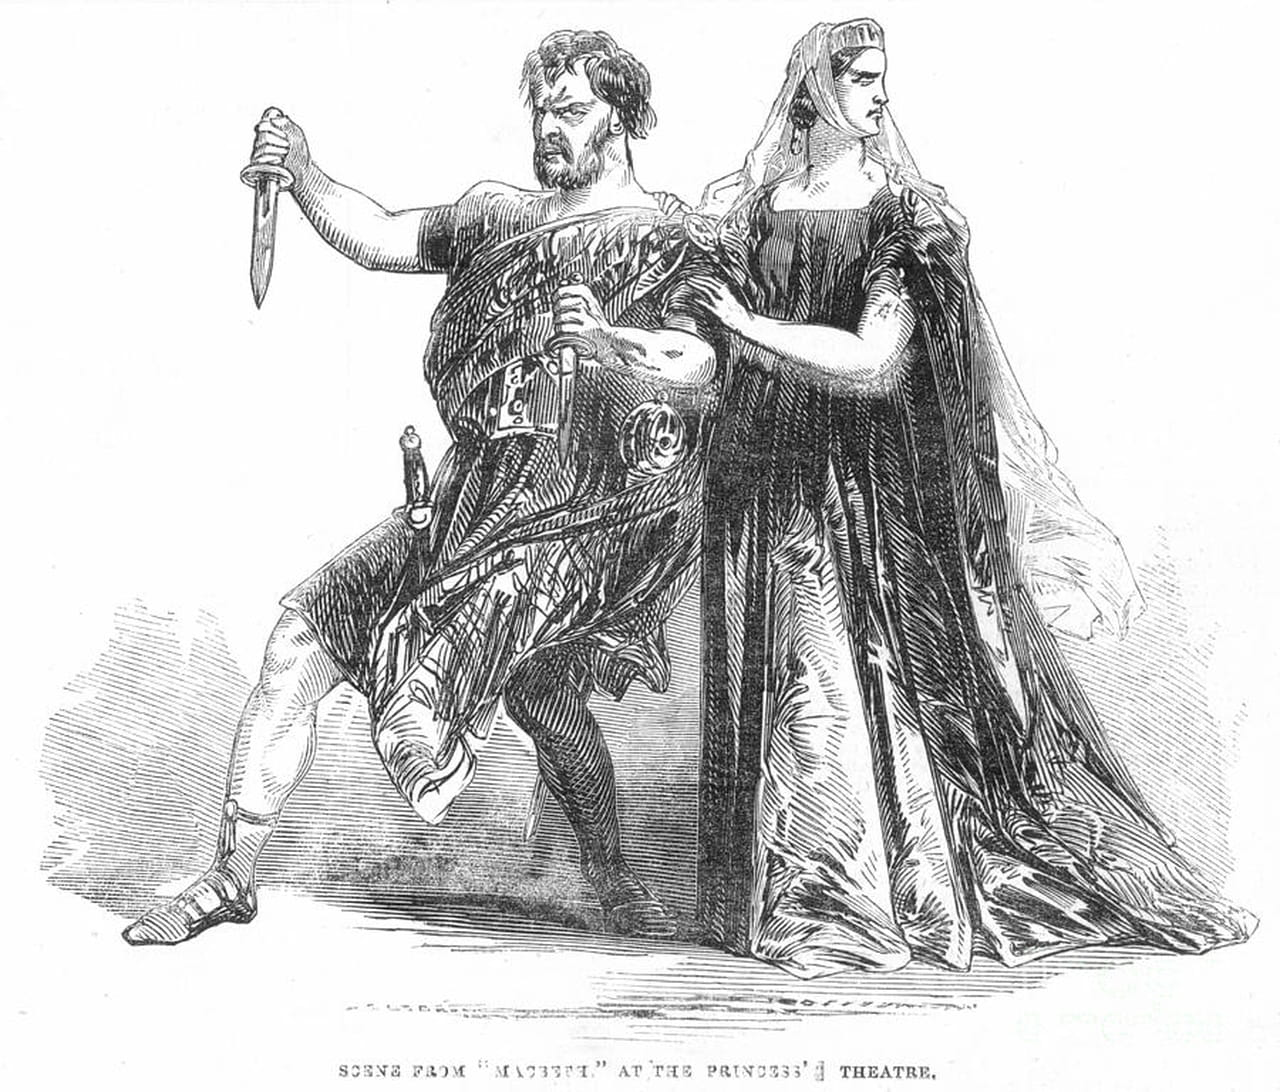 """catharsis in hamlet The tyranny of tragedy: catharsis in england and the  prompts hamlet's now famous assertion """"the play  catharsis by examining the overlapping discourses."""